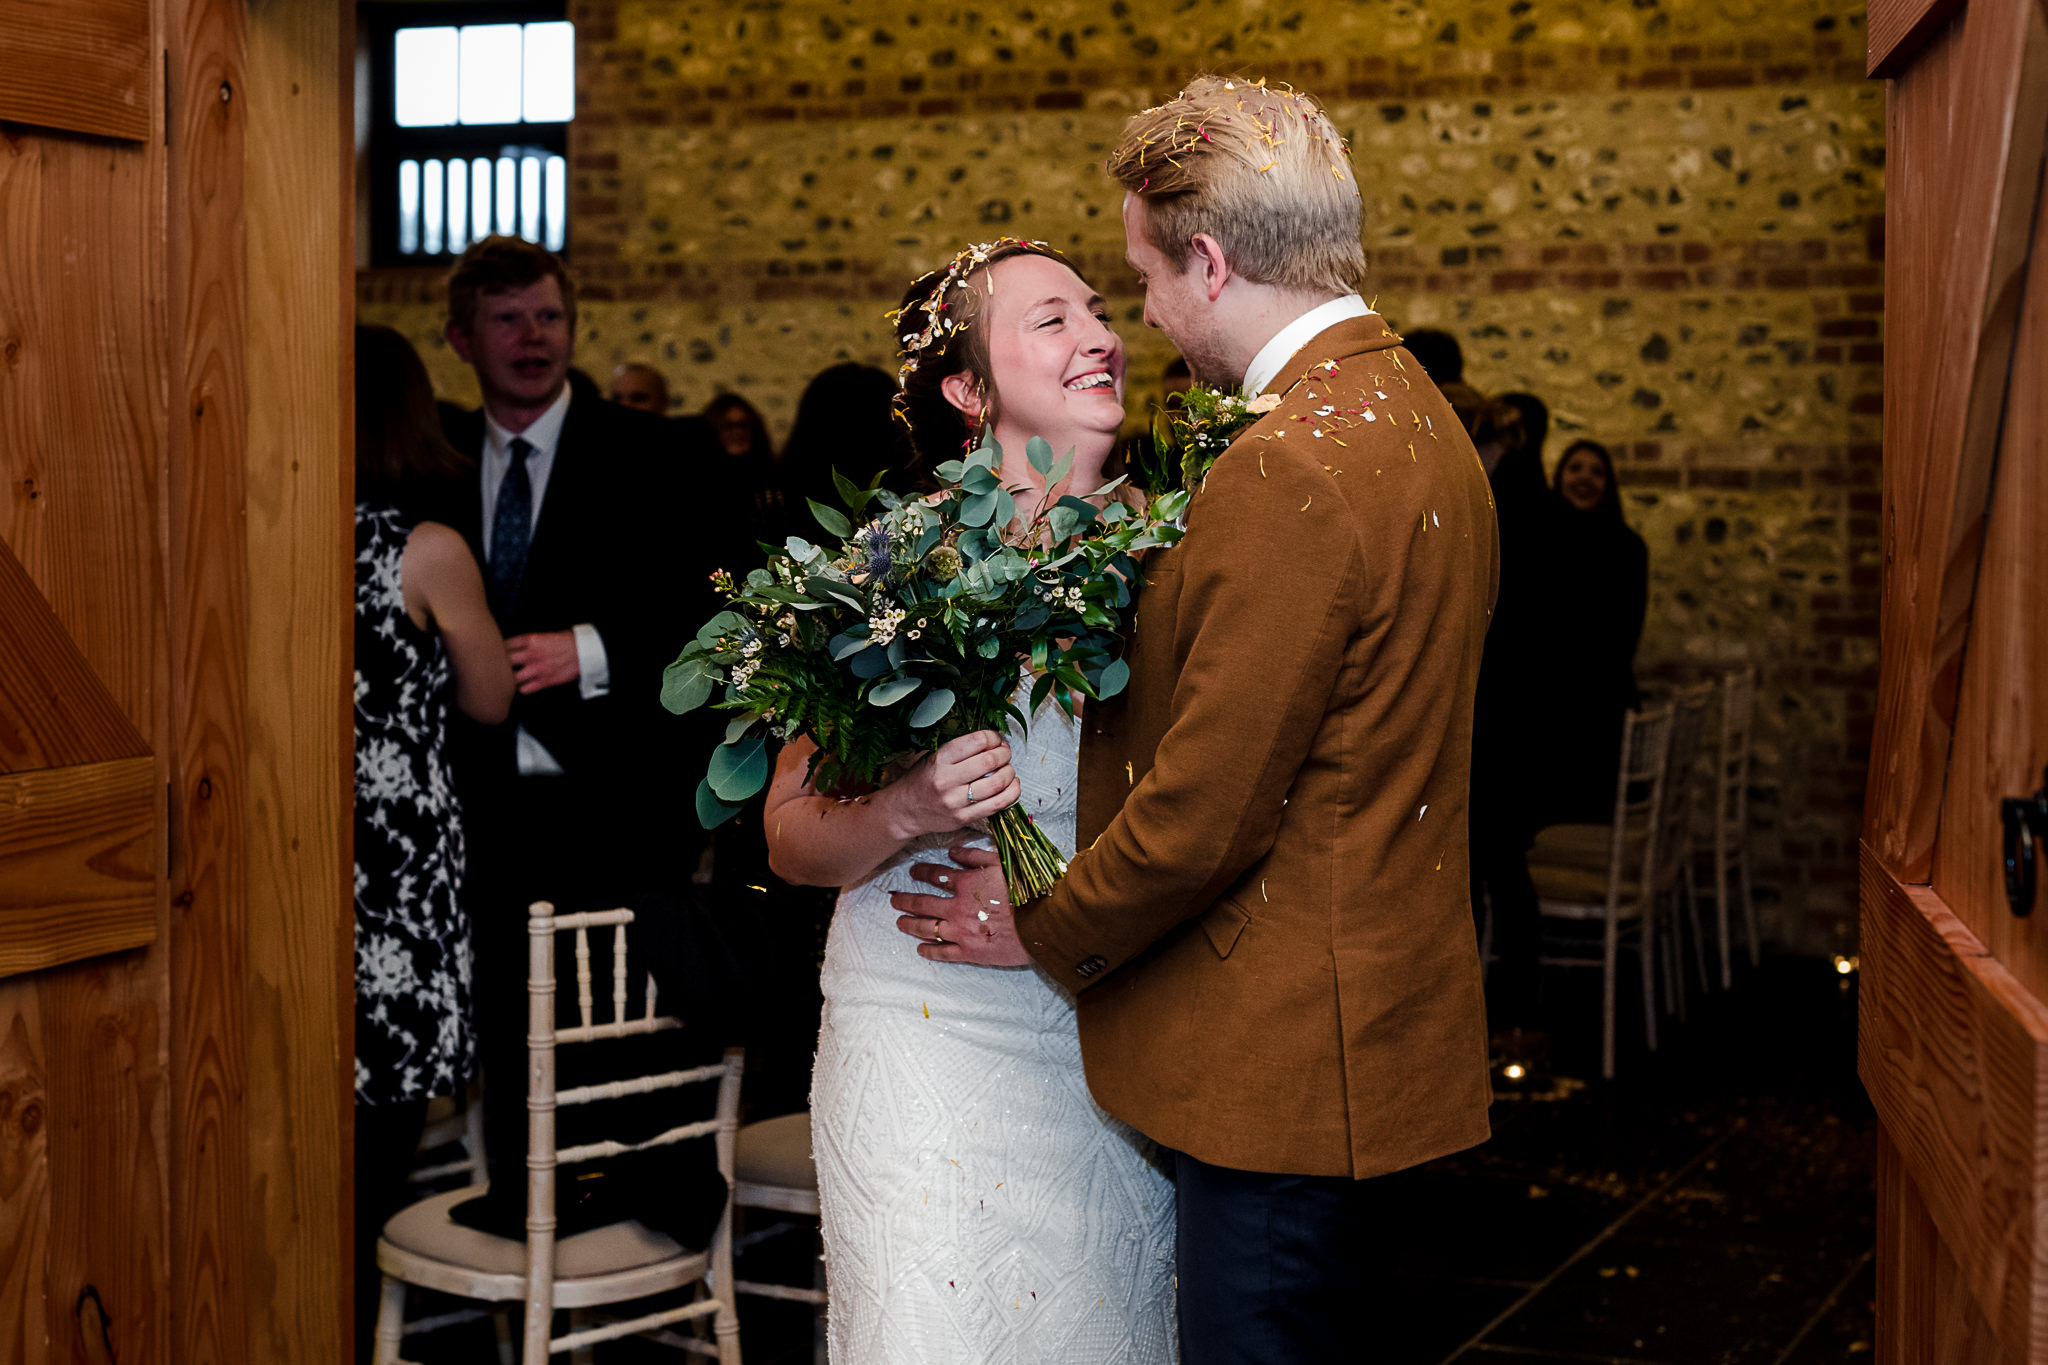 The Gathering Barn Wedding - Art by Design Photography